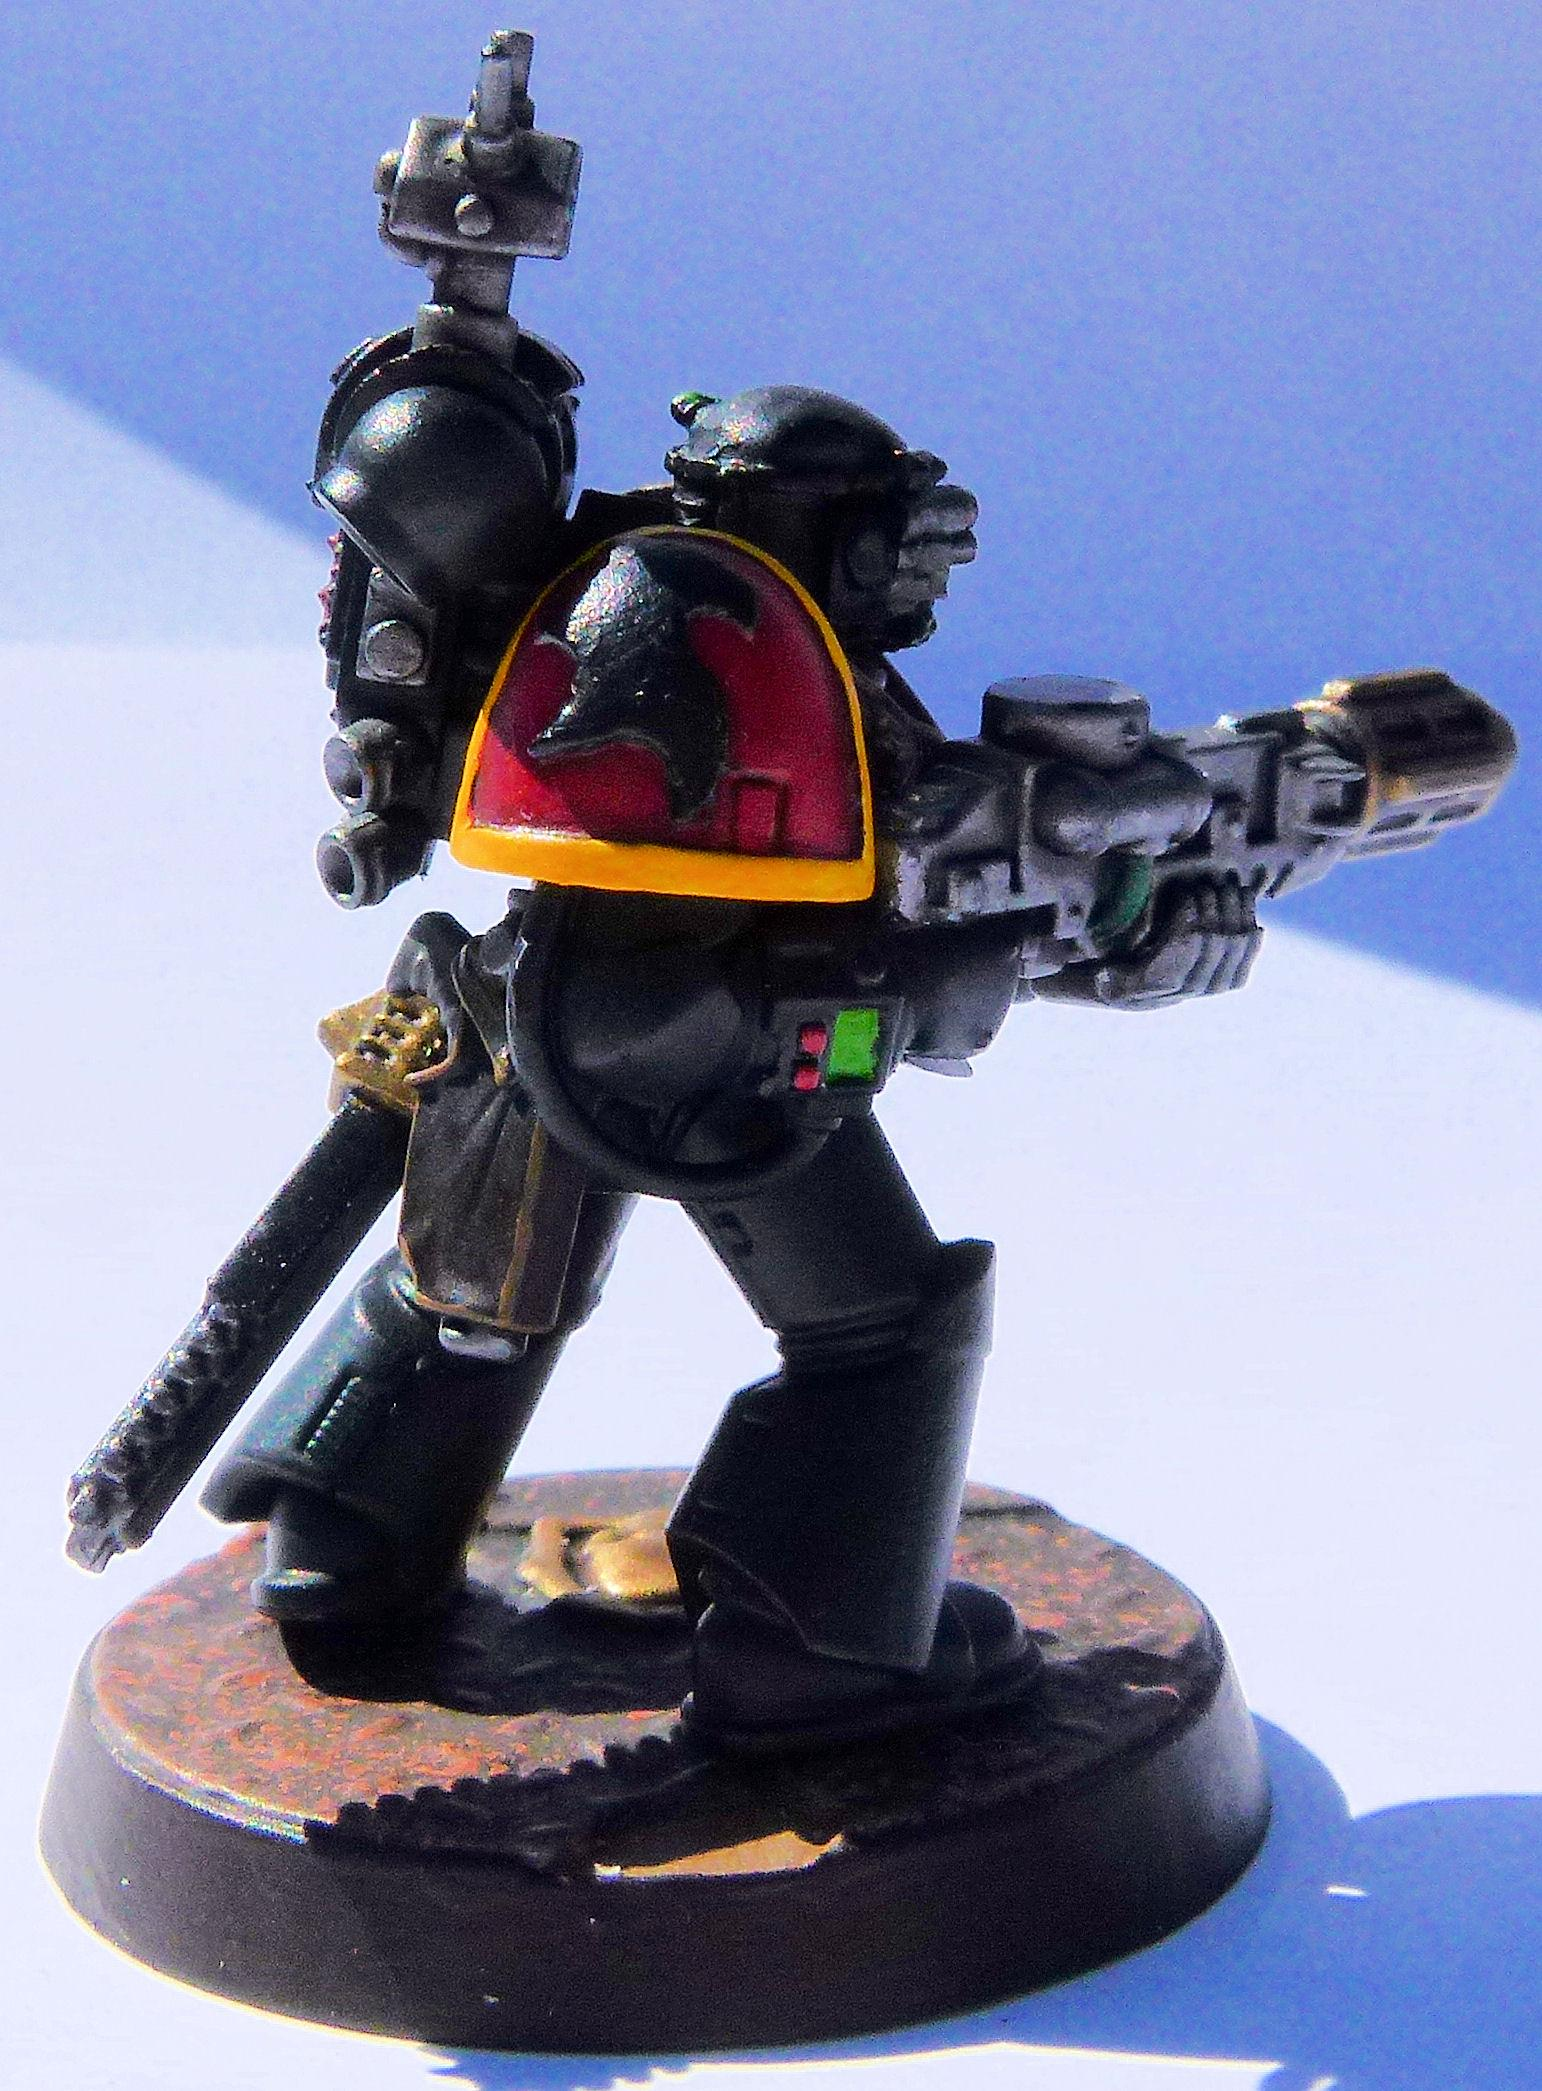 Deathwatch Blackwing Right